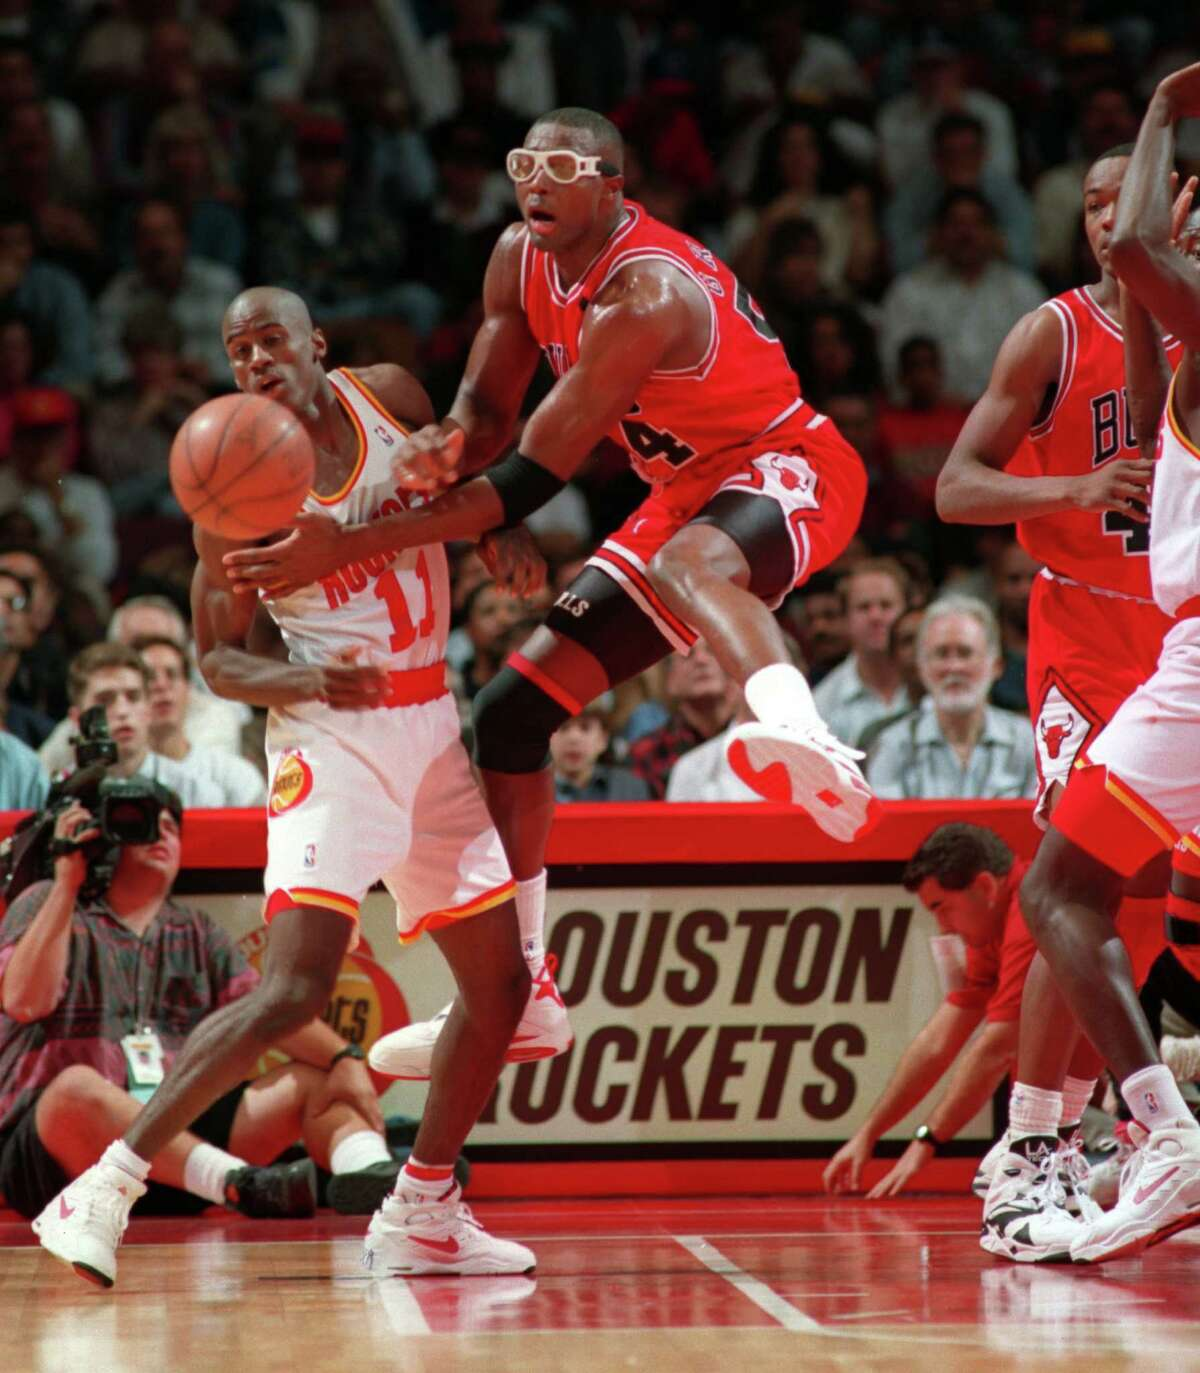 Rockets vs Chicago Bulls photo shot on 11_23_93 HOUCHRON CAPTION (12/18/1998): Not even Horace Grant and the defending champion Chicago Bulls could slow Vernon Maxwell and the Rockets, who made the Bulls victim No. 10 with a 100-93 victory at home.